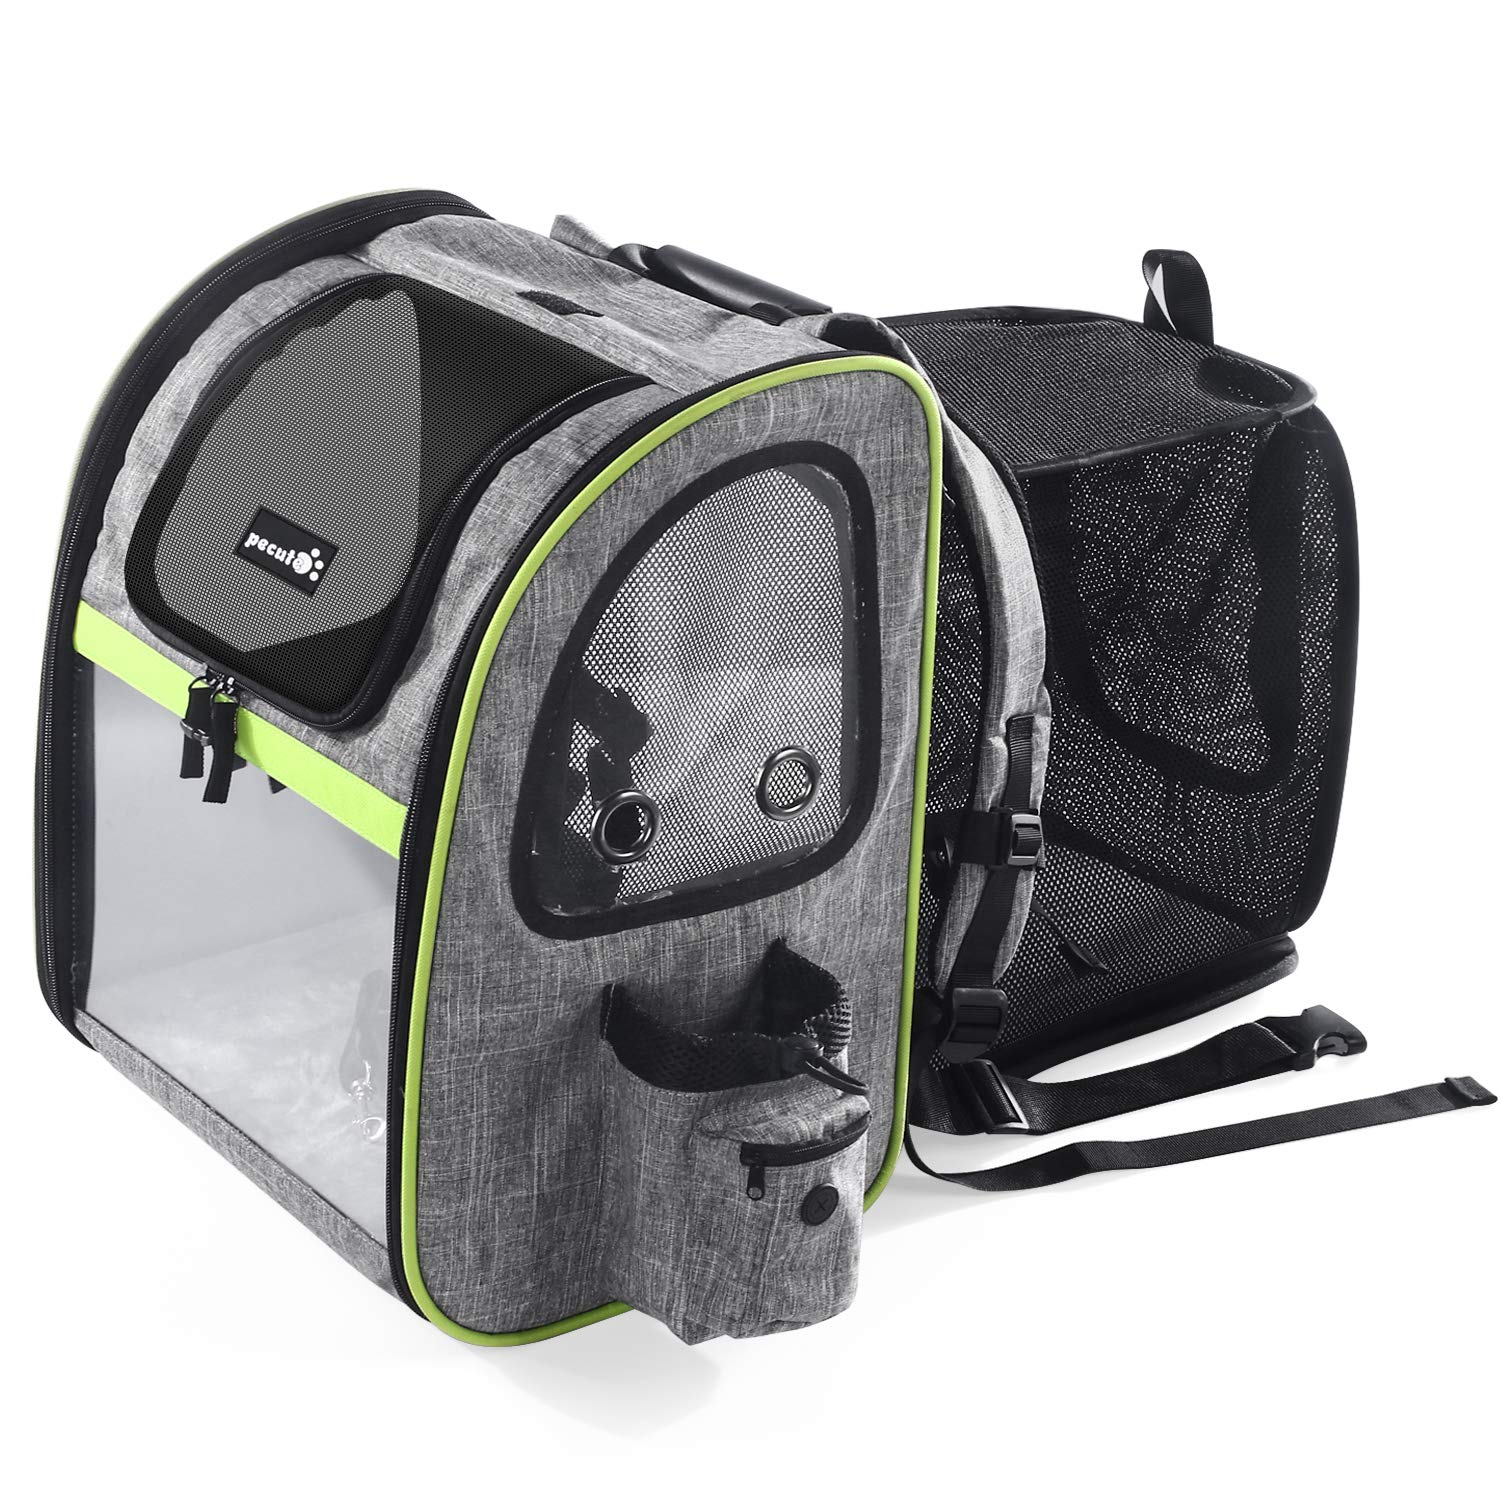 Pecute Pet Carrier Backpack Expandable, Portable Breathable Rucksack with Mesh Opening-Visible Acrylic-Safety Belt-Pockets, Extendable Back More Space Great For Carrying Puppy Dogs Cats Up to 20KG